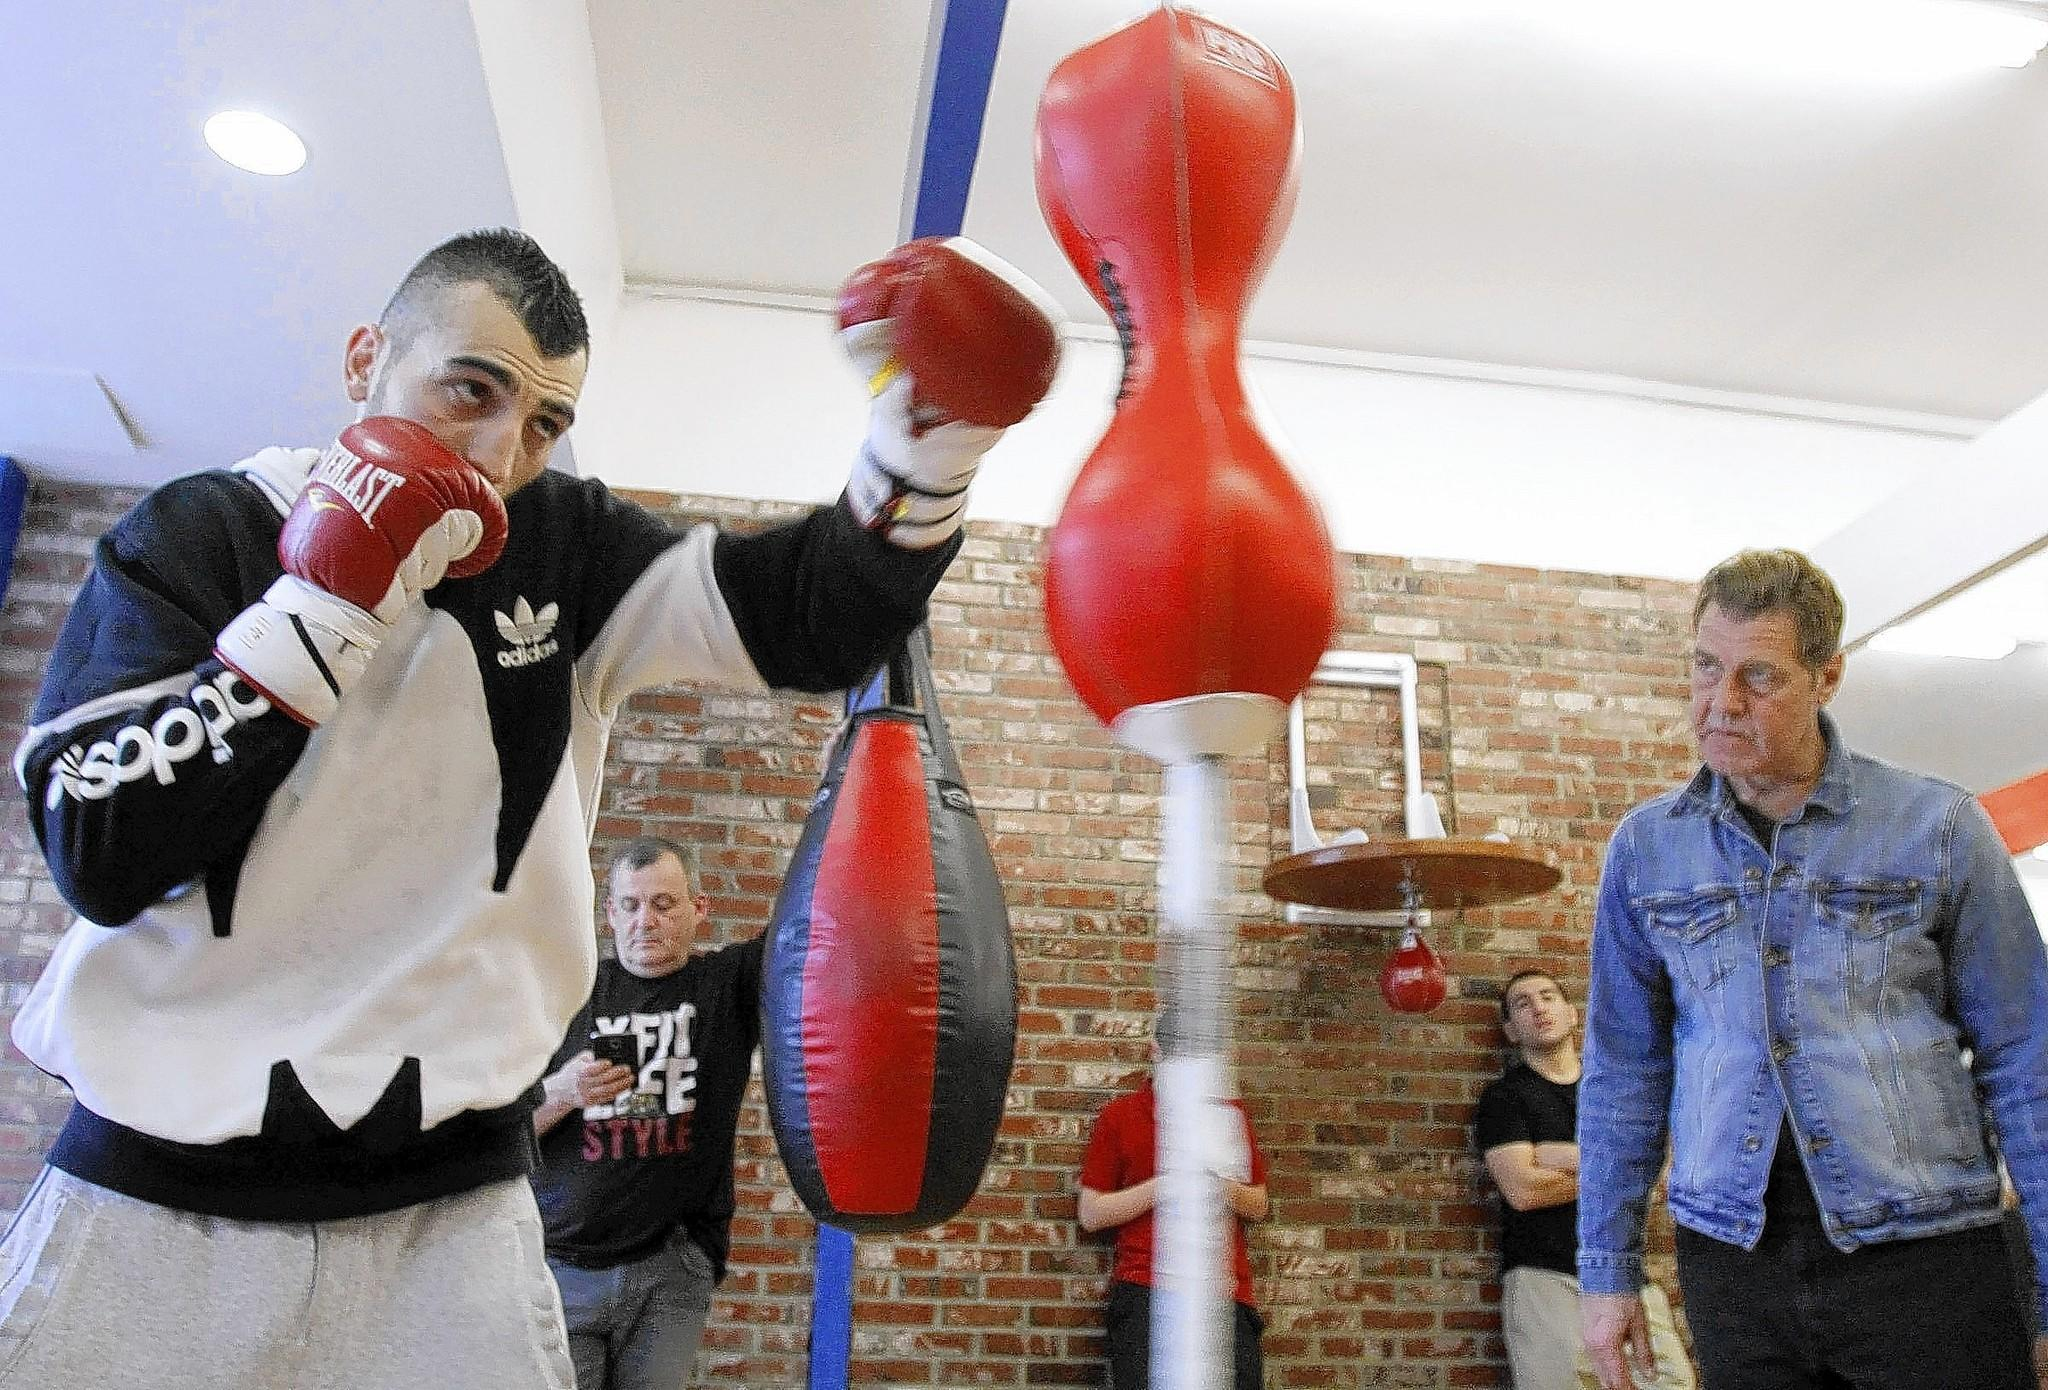 With trainer Joe Goosen keeping a close watch at right, Glendale boxer Vanes Martirosyan trains at Ten Goose Boxing gym in Van Nuys on Tuesday, March 11, 2014. Martirosyan is preparing for an upcoming fight against Mario Alberto Lozano on Friday, March 21, 2014.